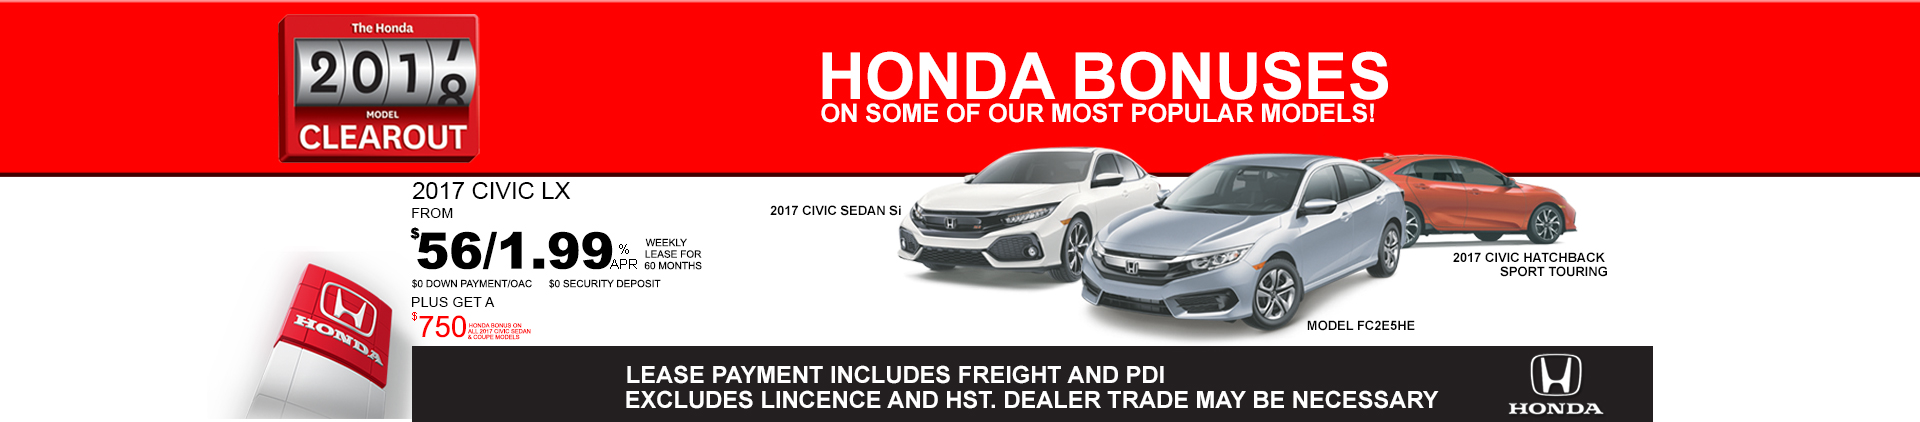 2017 Honda Civic Clearout